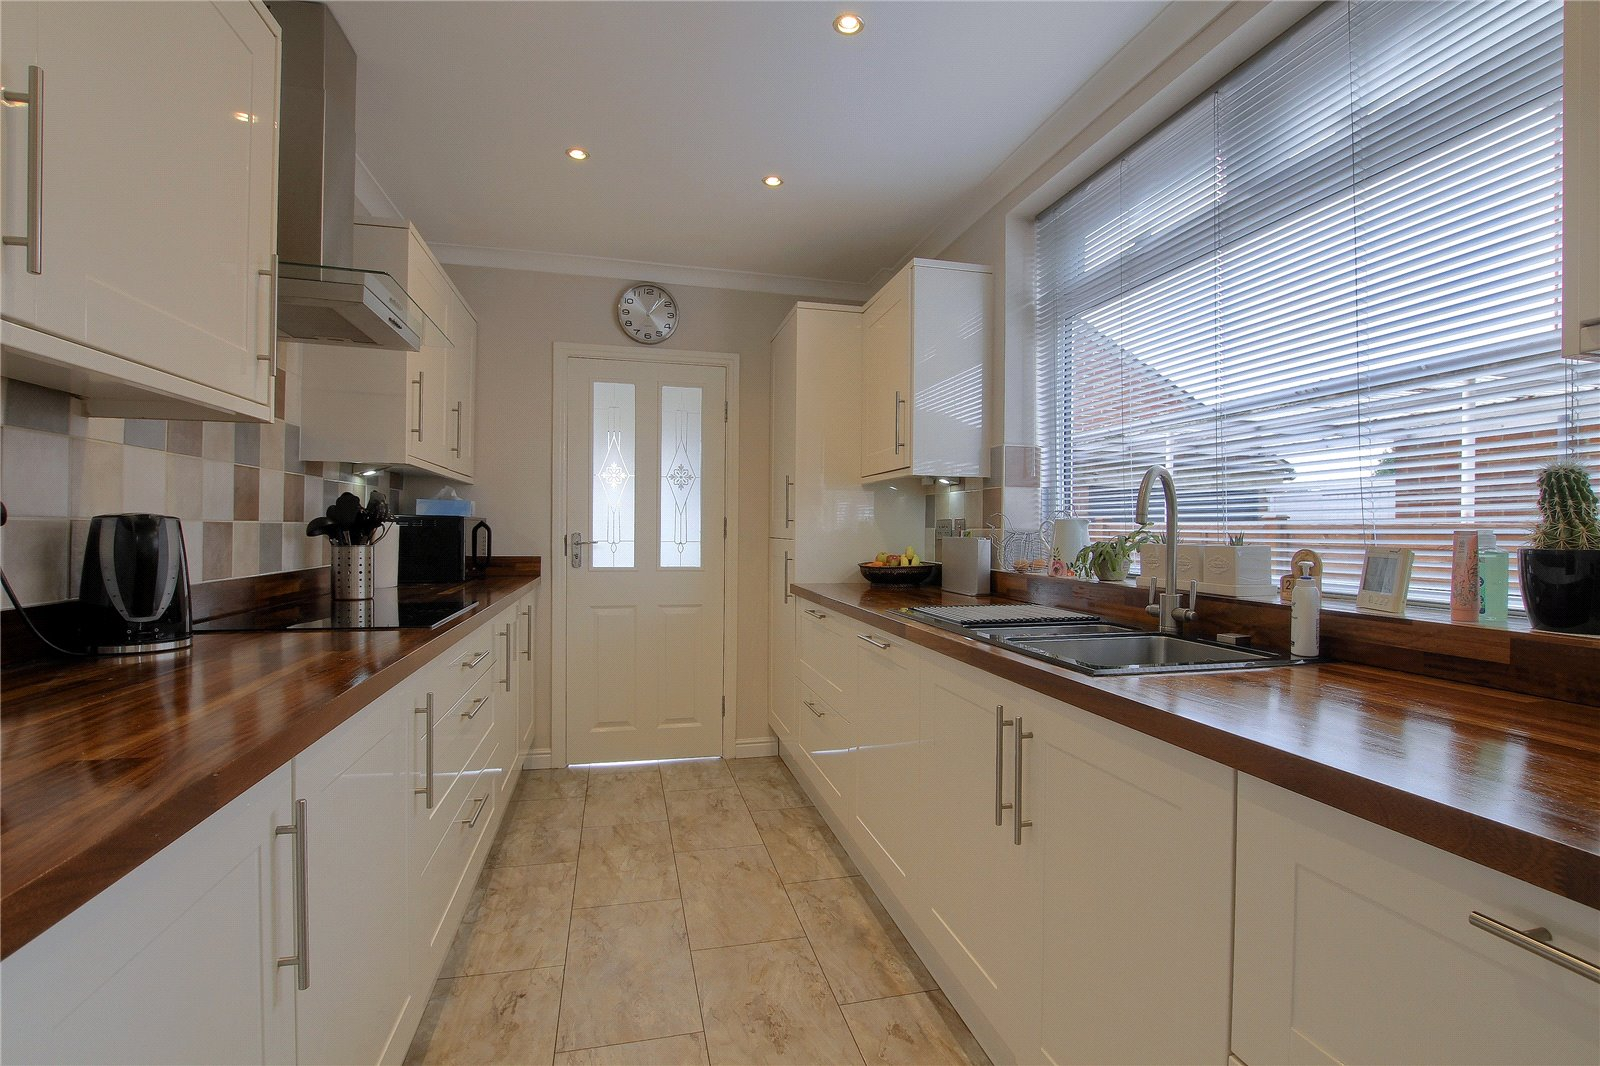 4 bed house for sale in Oldford Crescent, Acklam 2